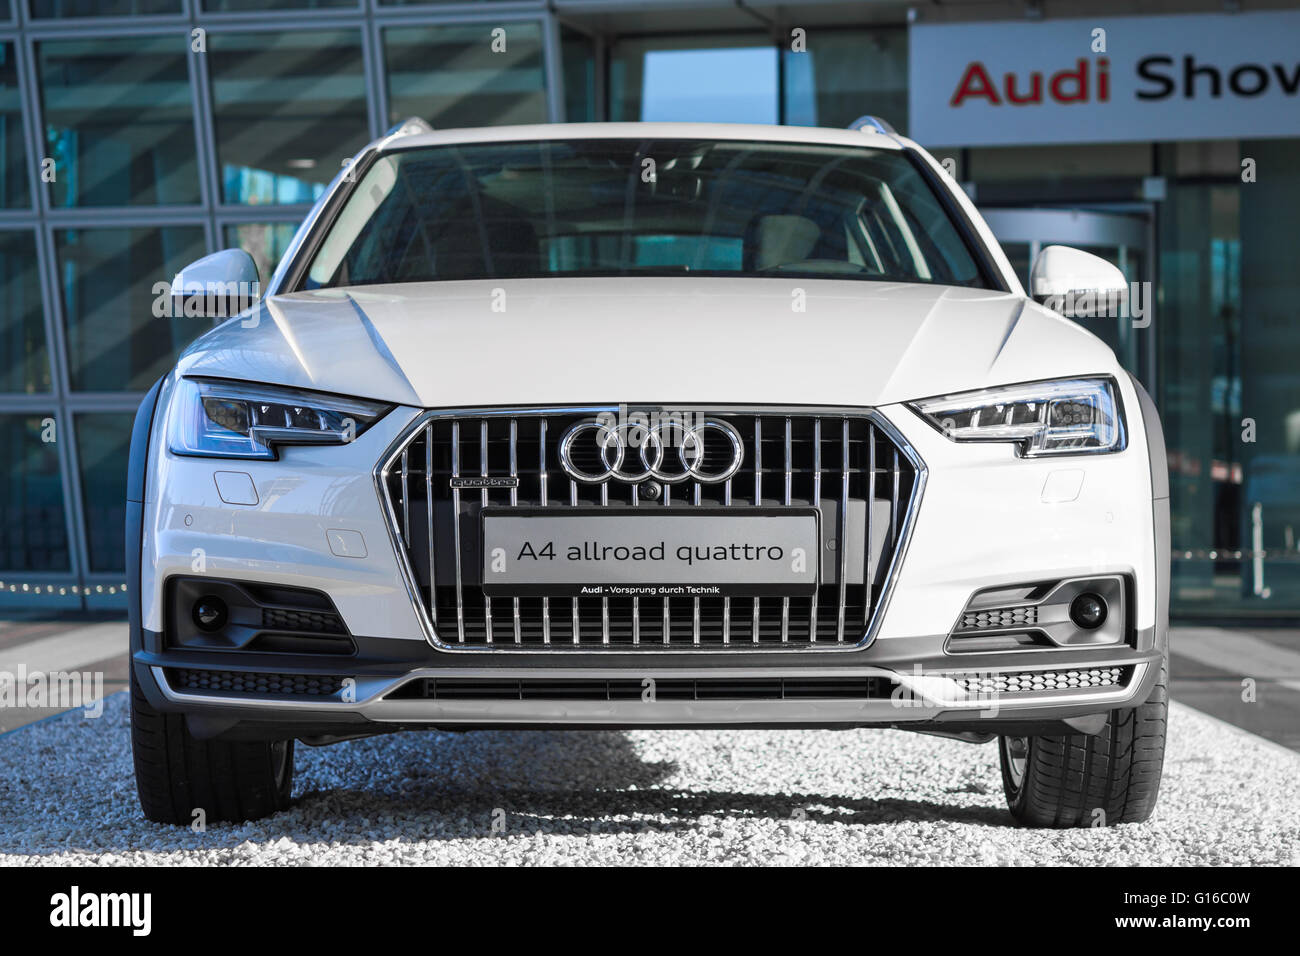 Audi A4 Allroad Quattro Is New Modern SUV Car Model With Four Wheel Drive  System And Powerful Diesel Engine